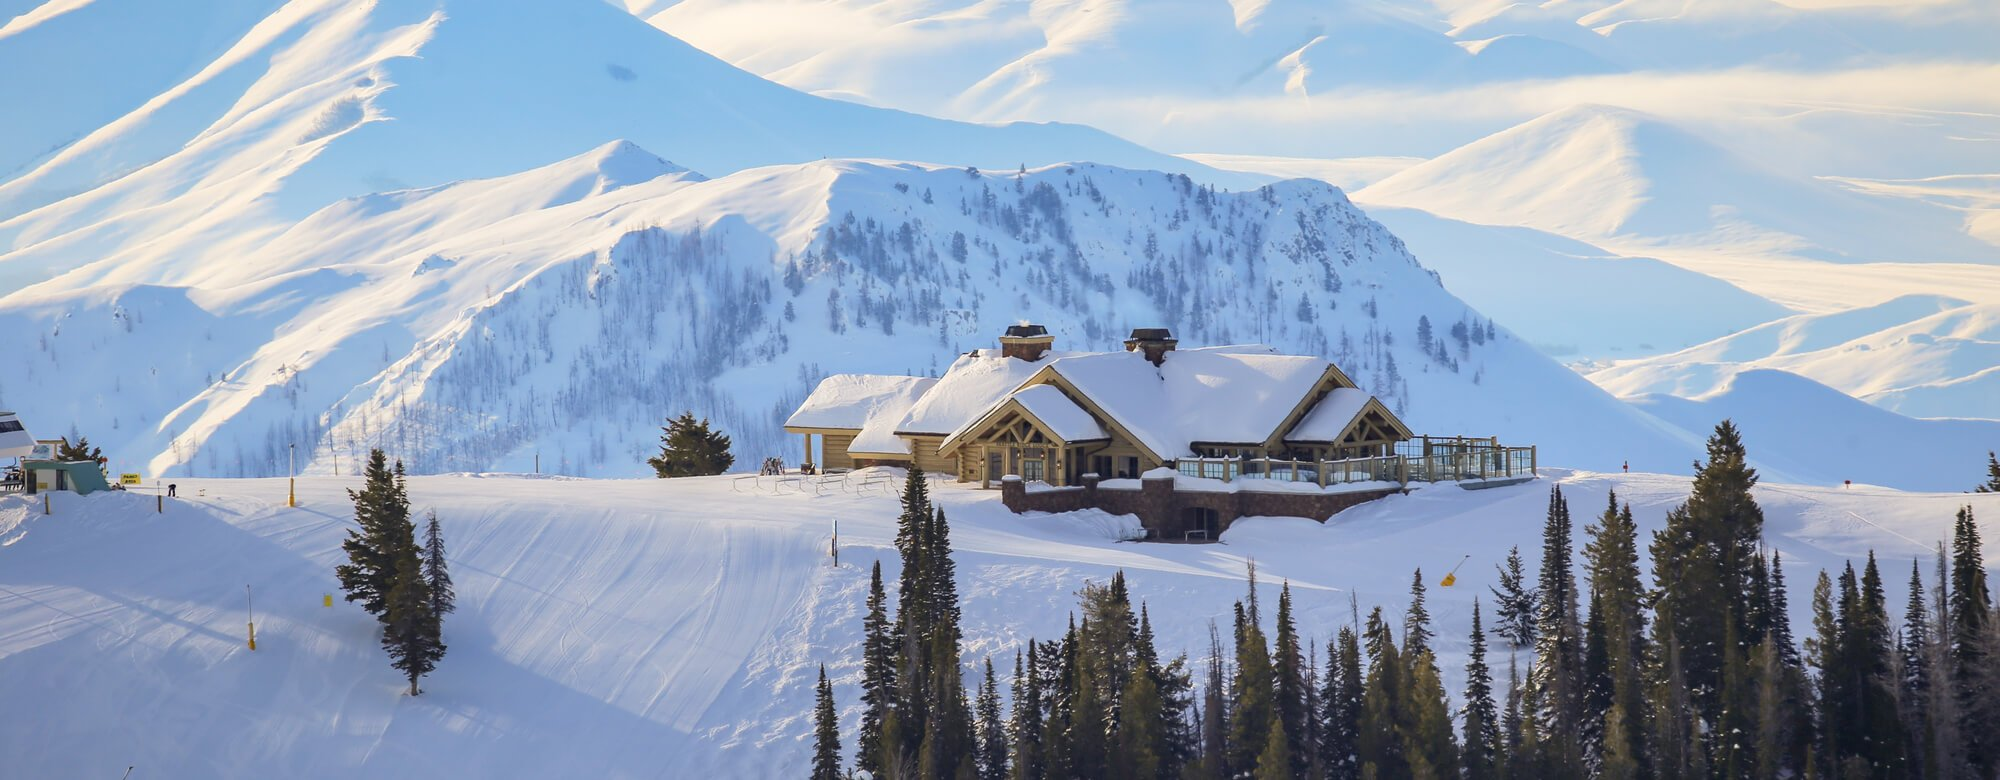 A home surrounded by snow on top of a mountain